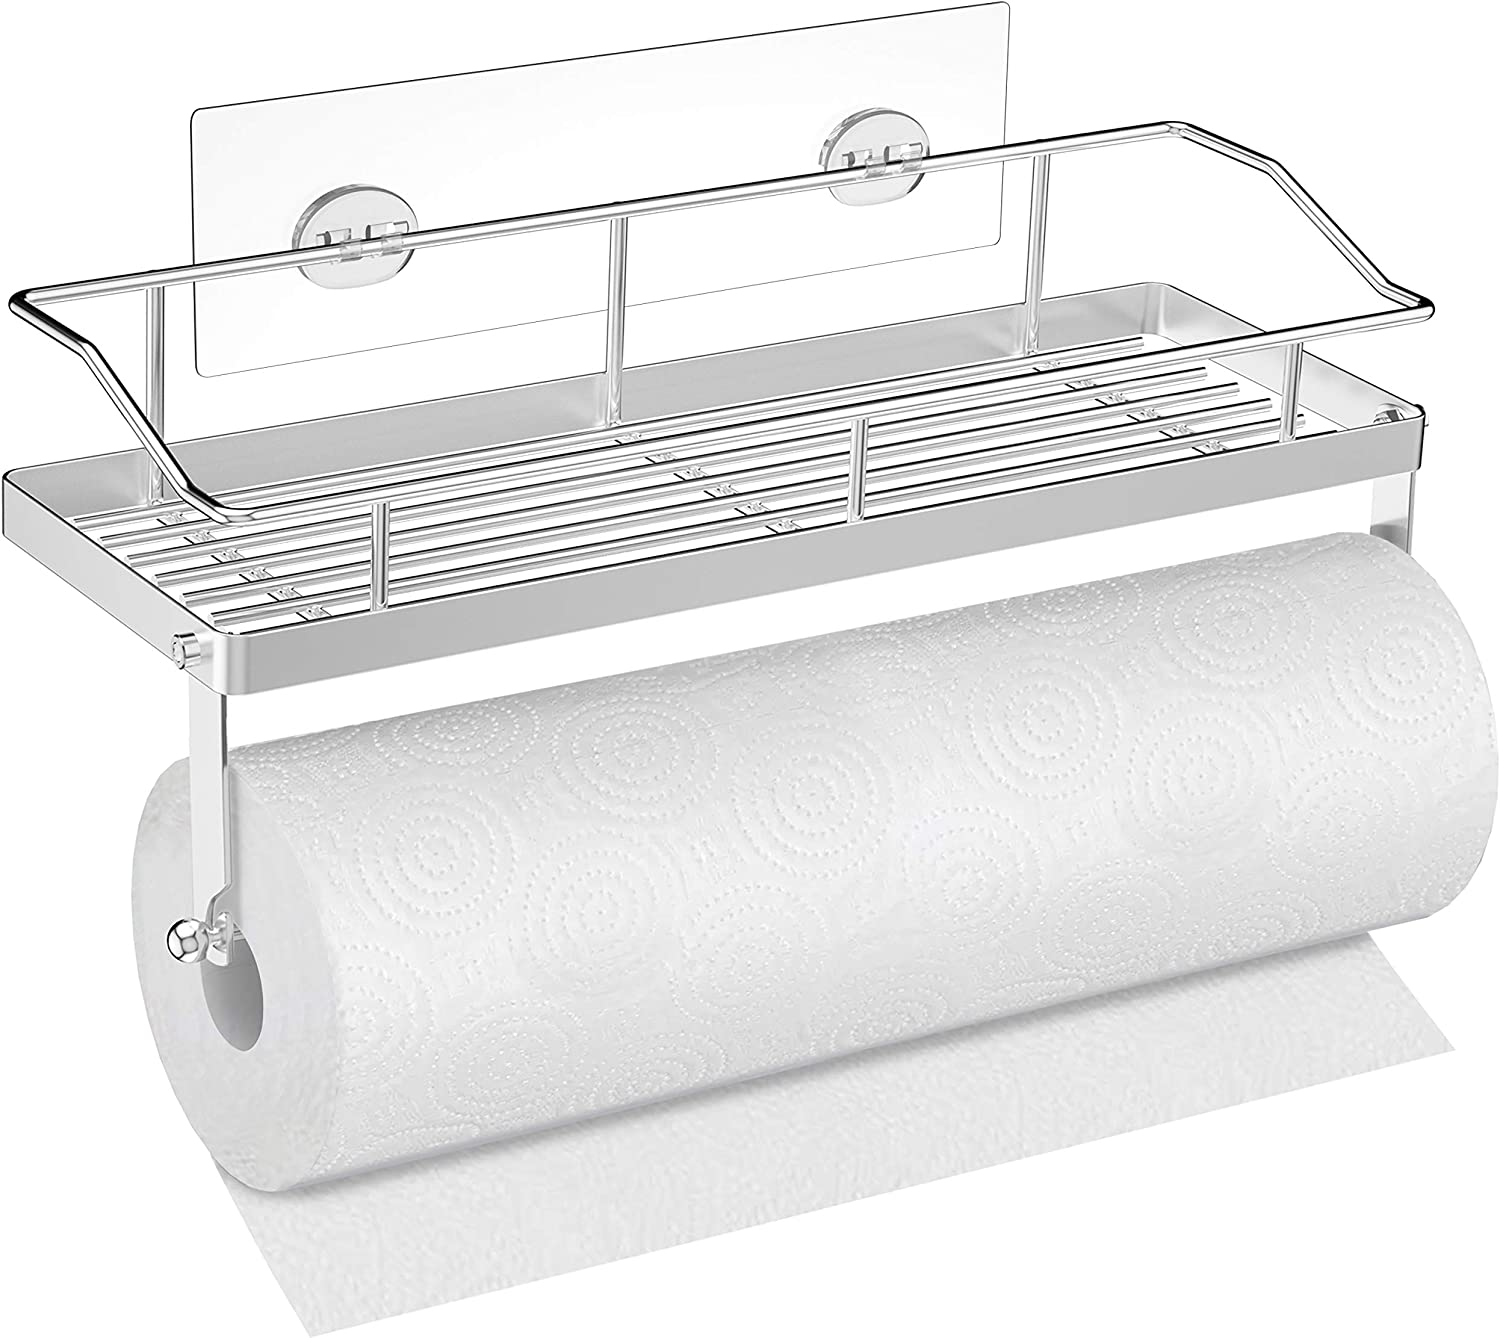 SMARTAKE Paper Towel Holder with Shelf, Shower Caddy & Paper Towel Combination, Stainless Steel, Wall Mounted Paper Towel Holder Rack with Adhesive, Storage Organizer for Kitchen, Bathroom and Dorm